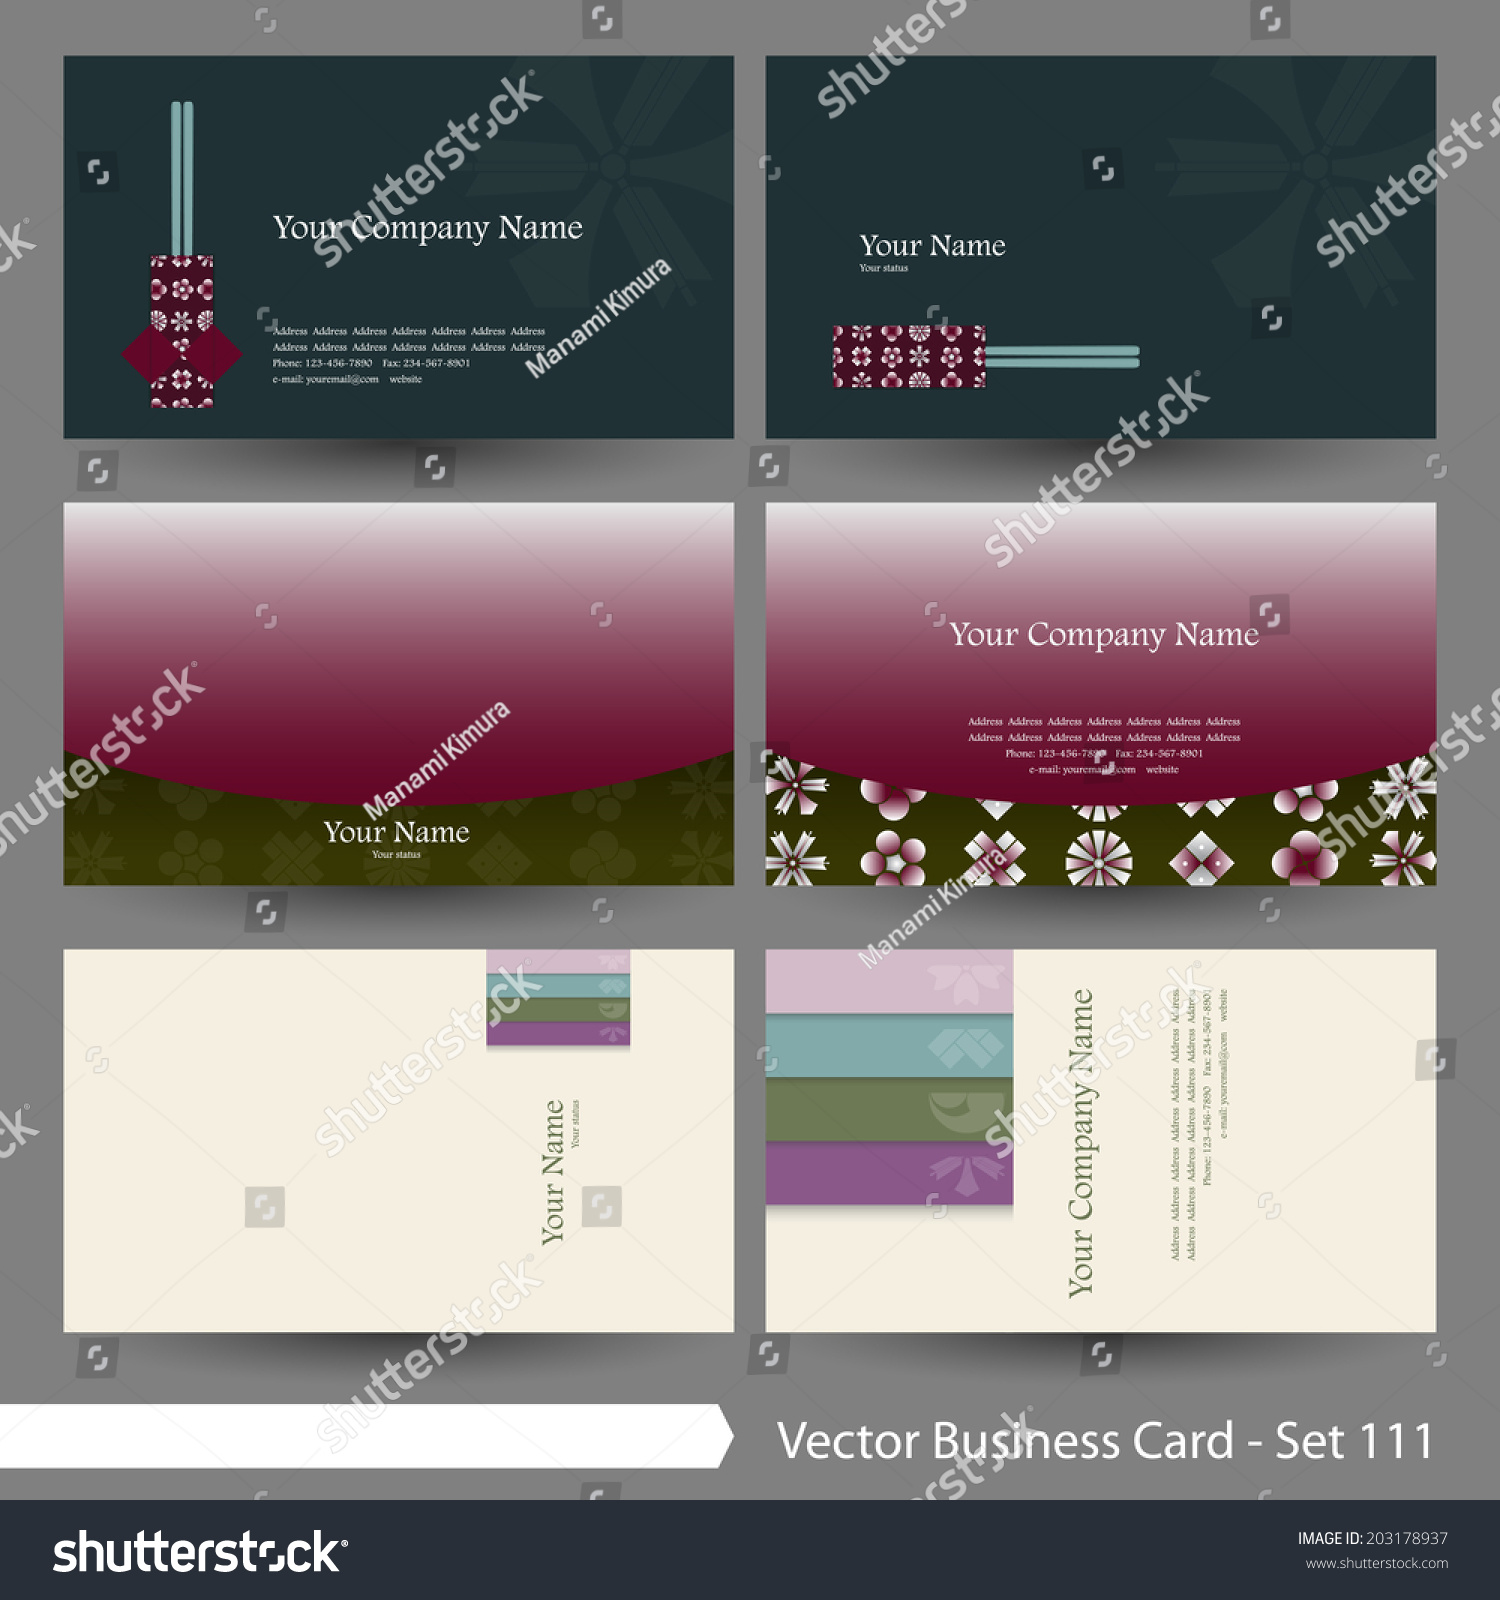 vector business card template set japanese stock vector 203178937